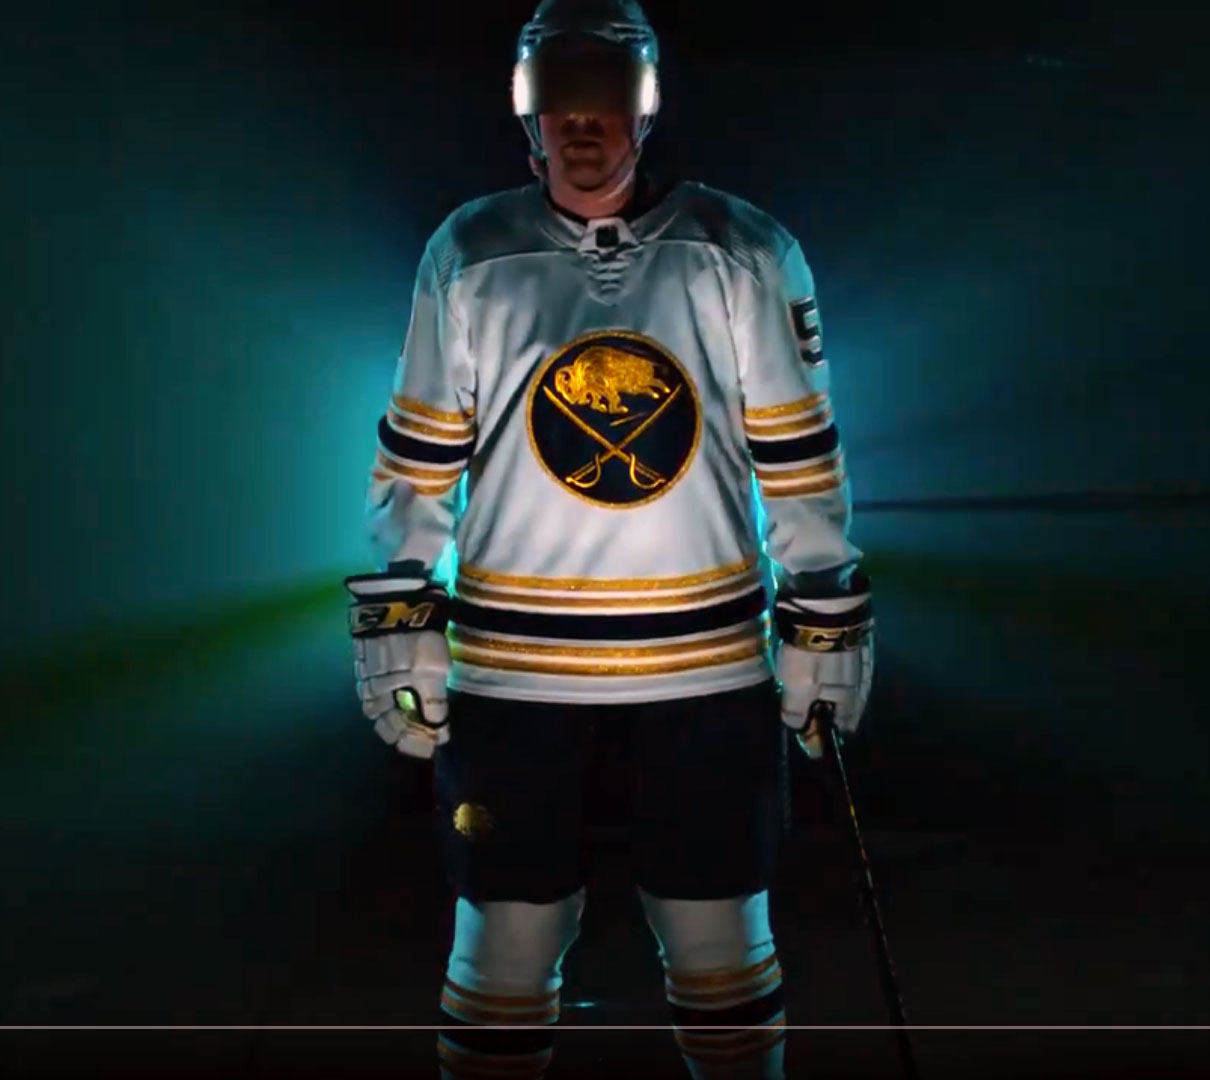 Buffalo Sabres Unveil Golden Jersey, Announce Return of Old Colours